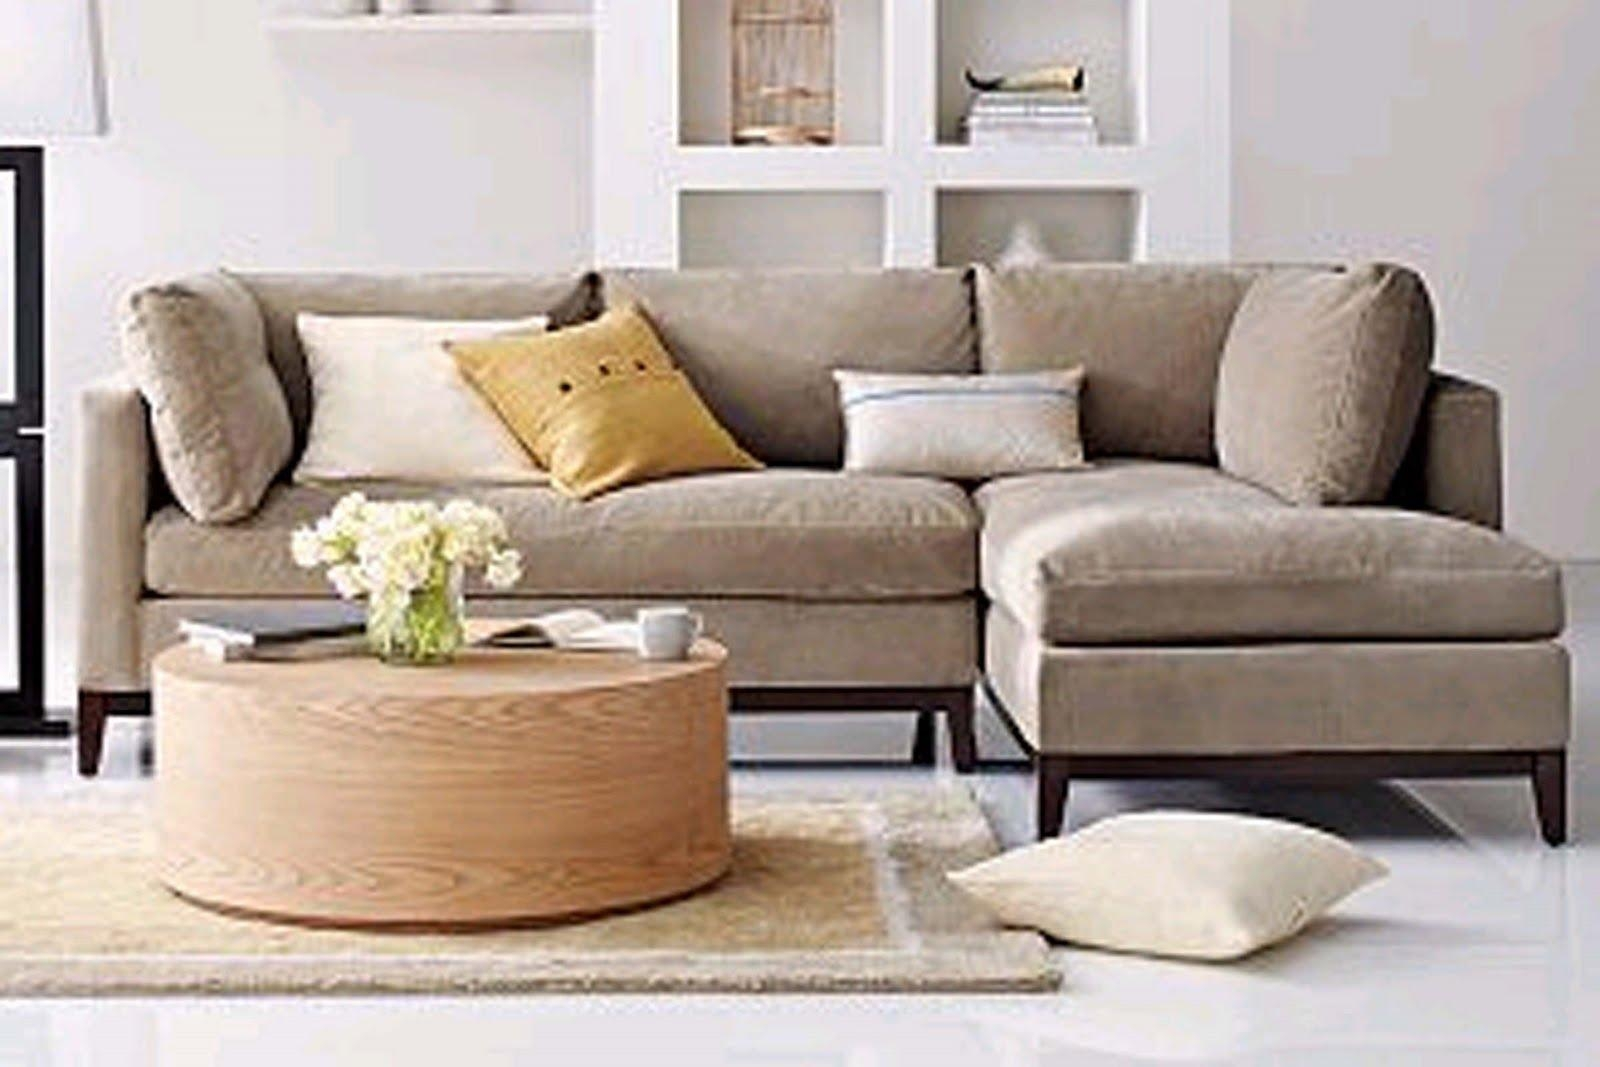 Featured Image of Crate And Barrel Sectional